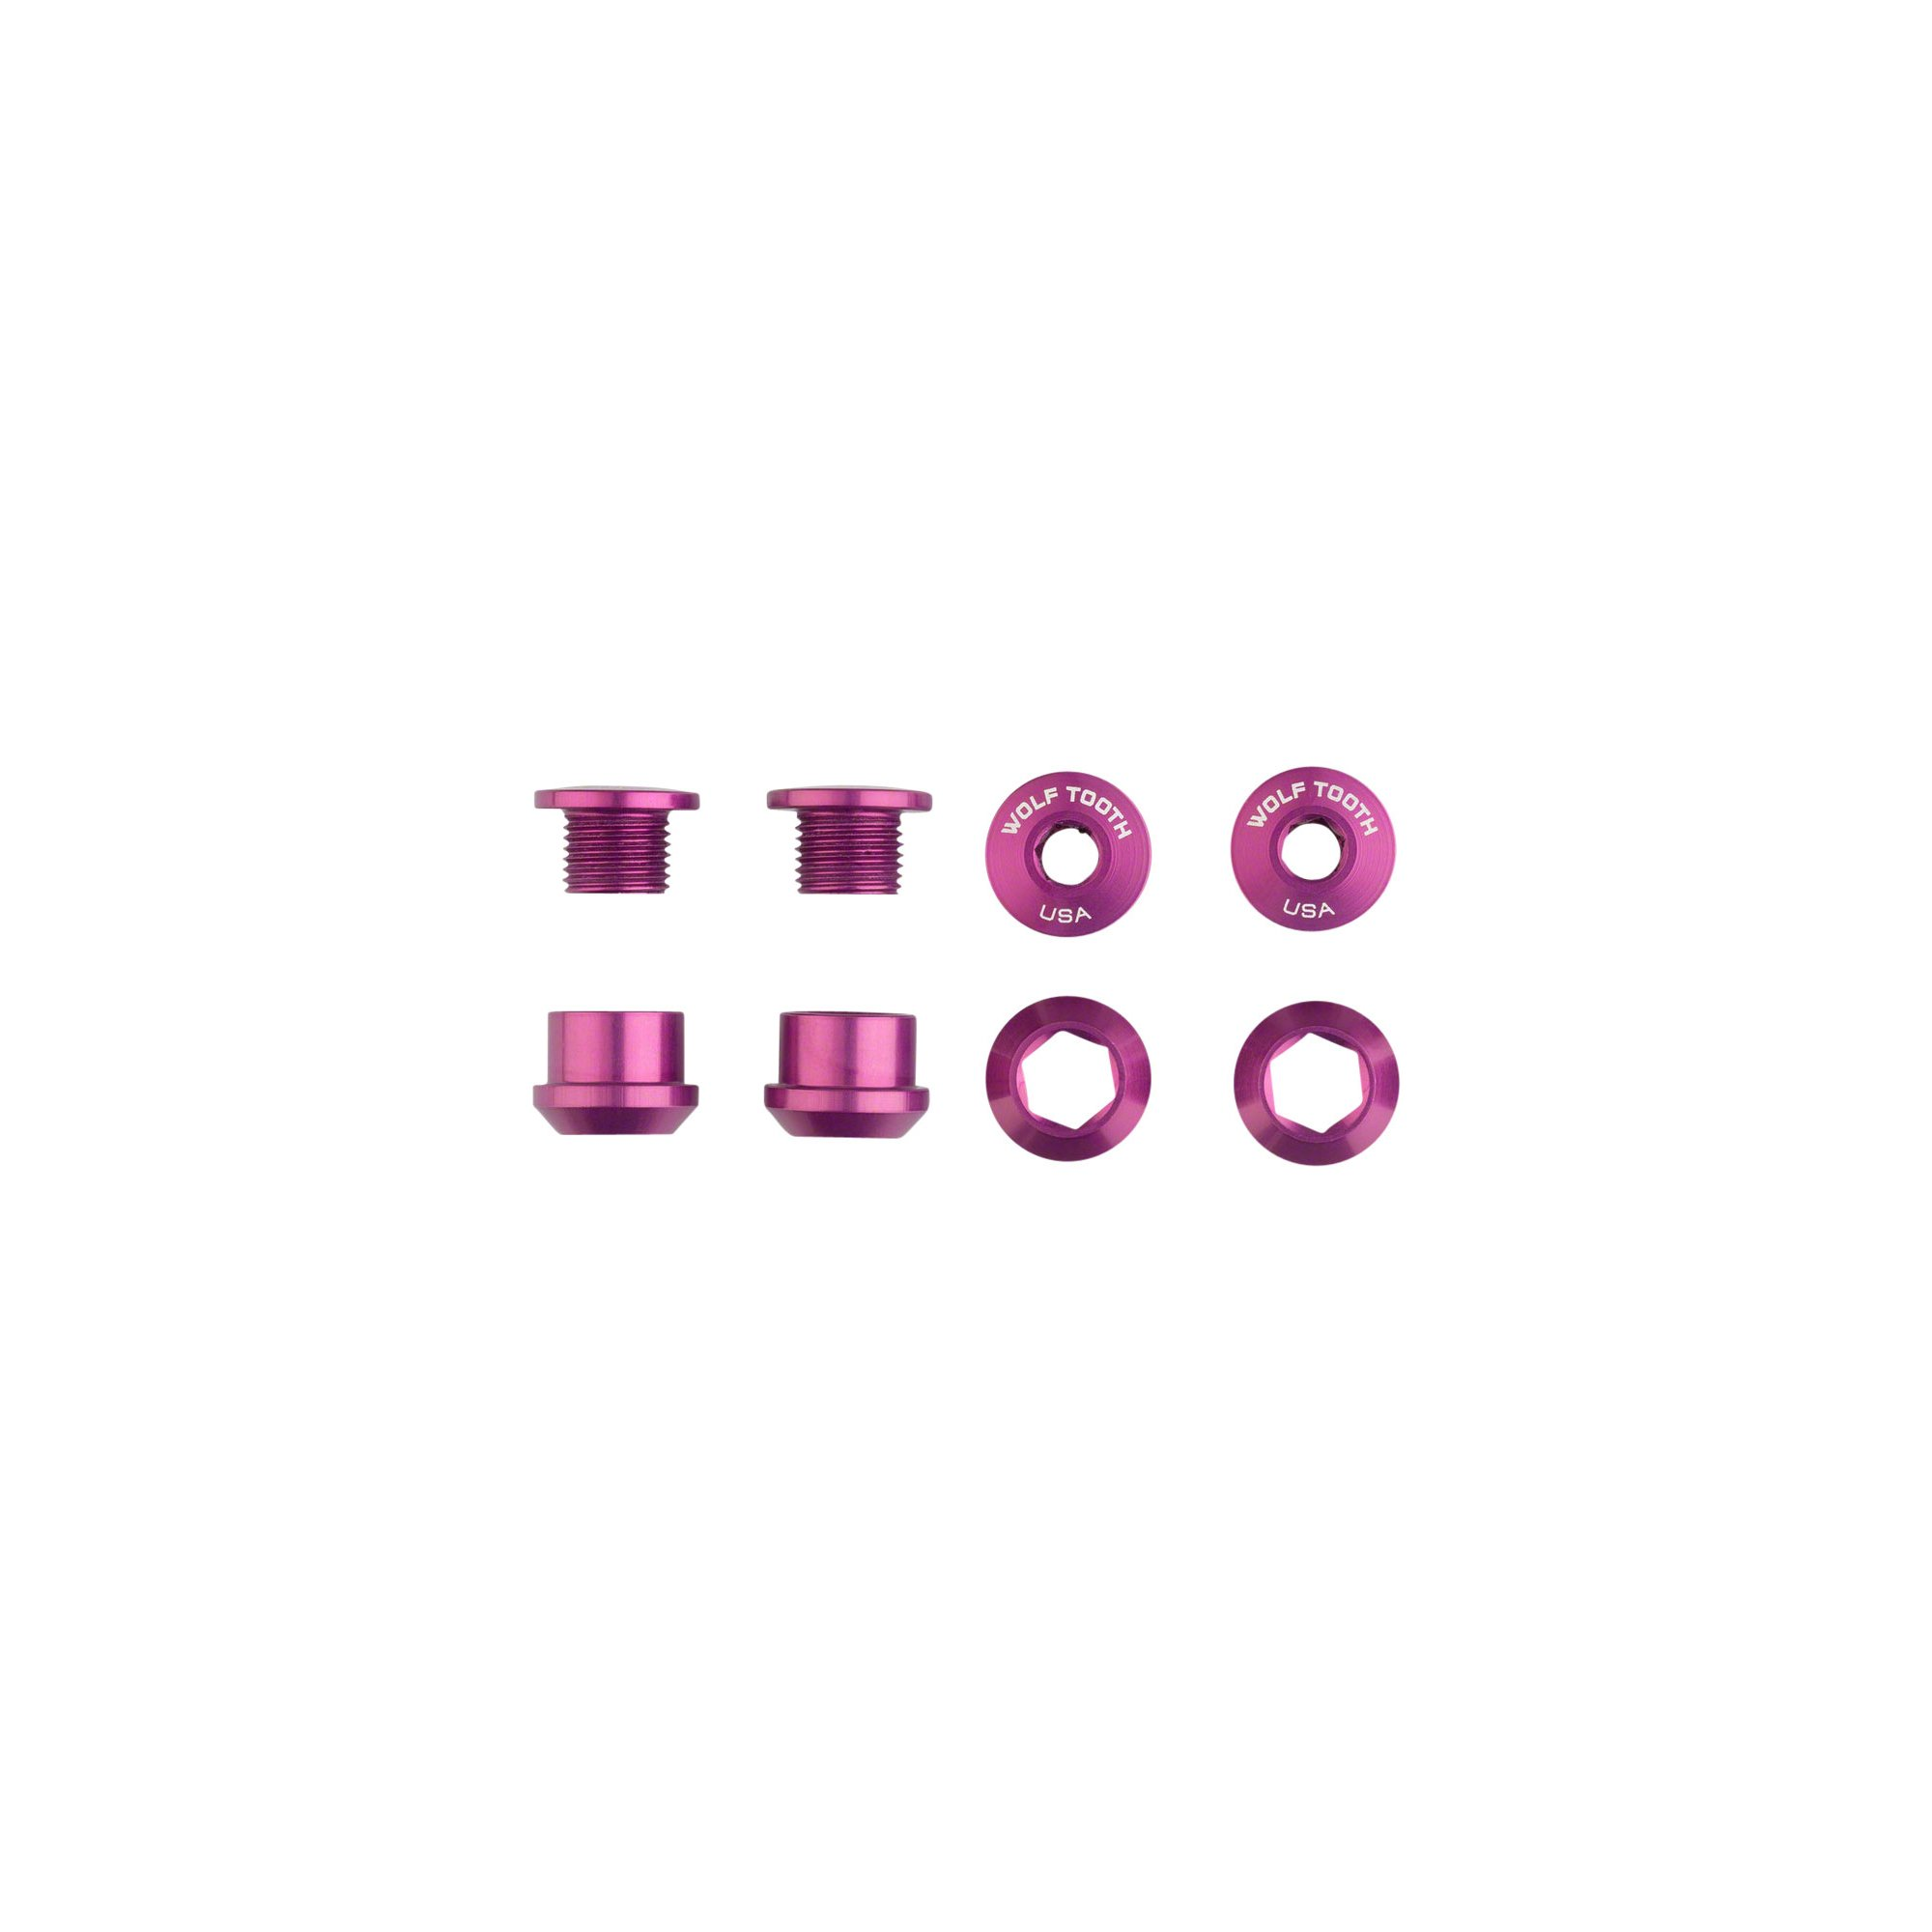 Wolf Tooth Components 1x 6mm Chainring Bolt: Purple Set of 4 Dual Hex Fittings by Wolf Tooth Components